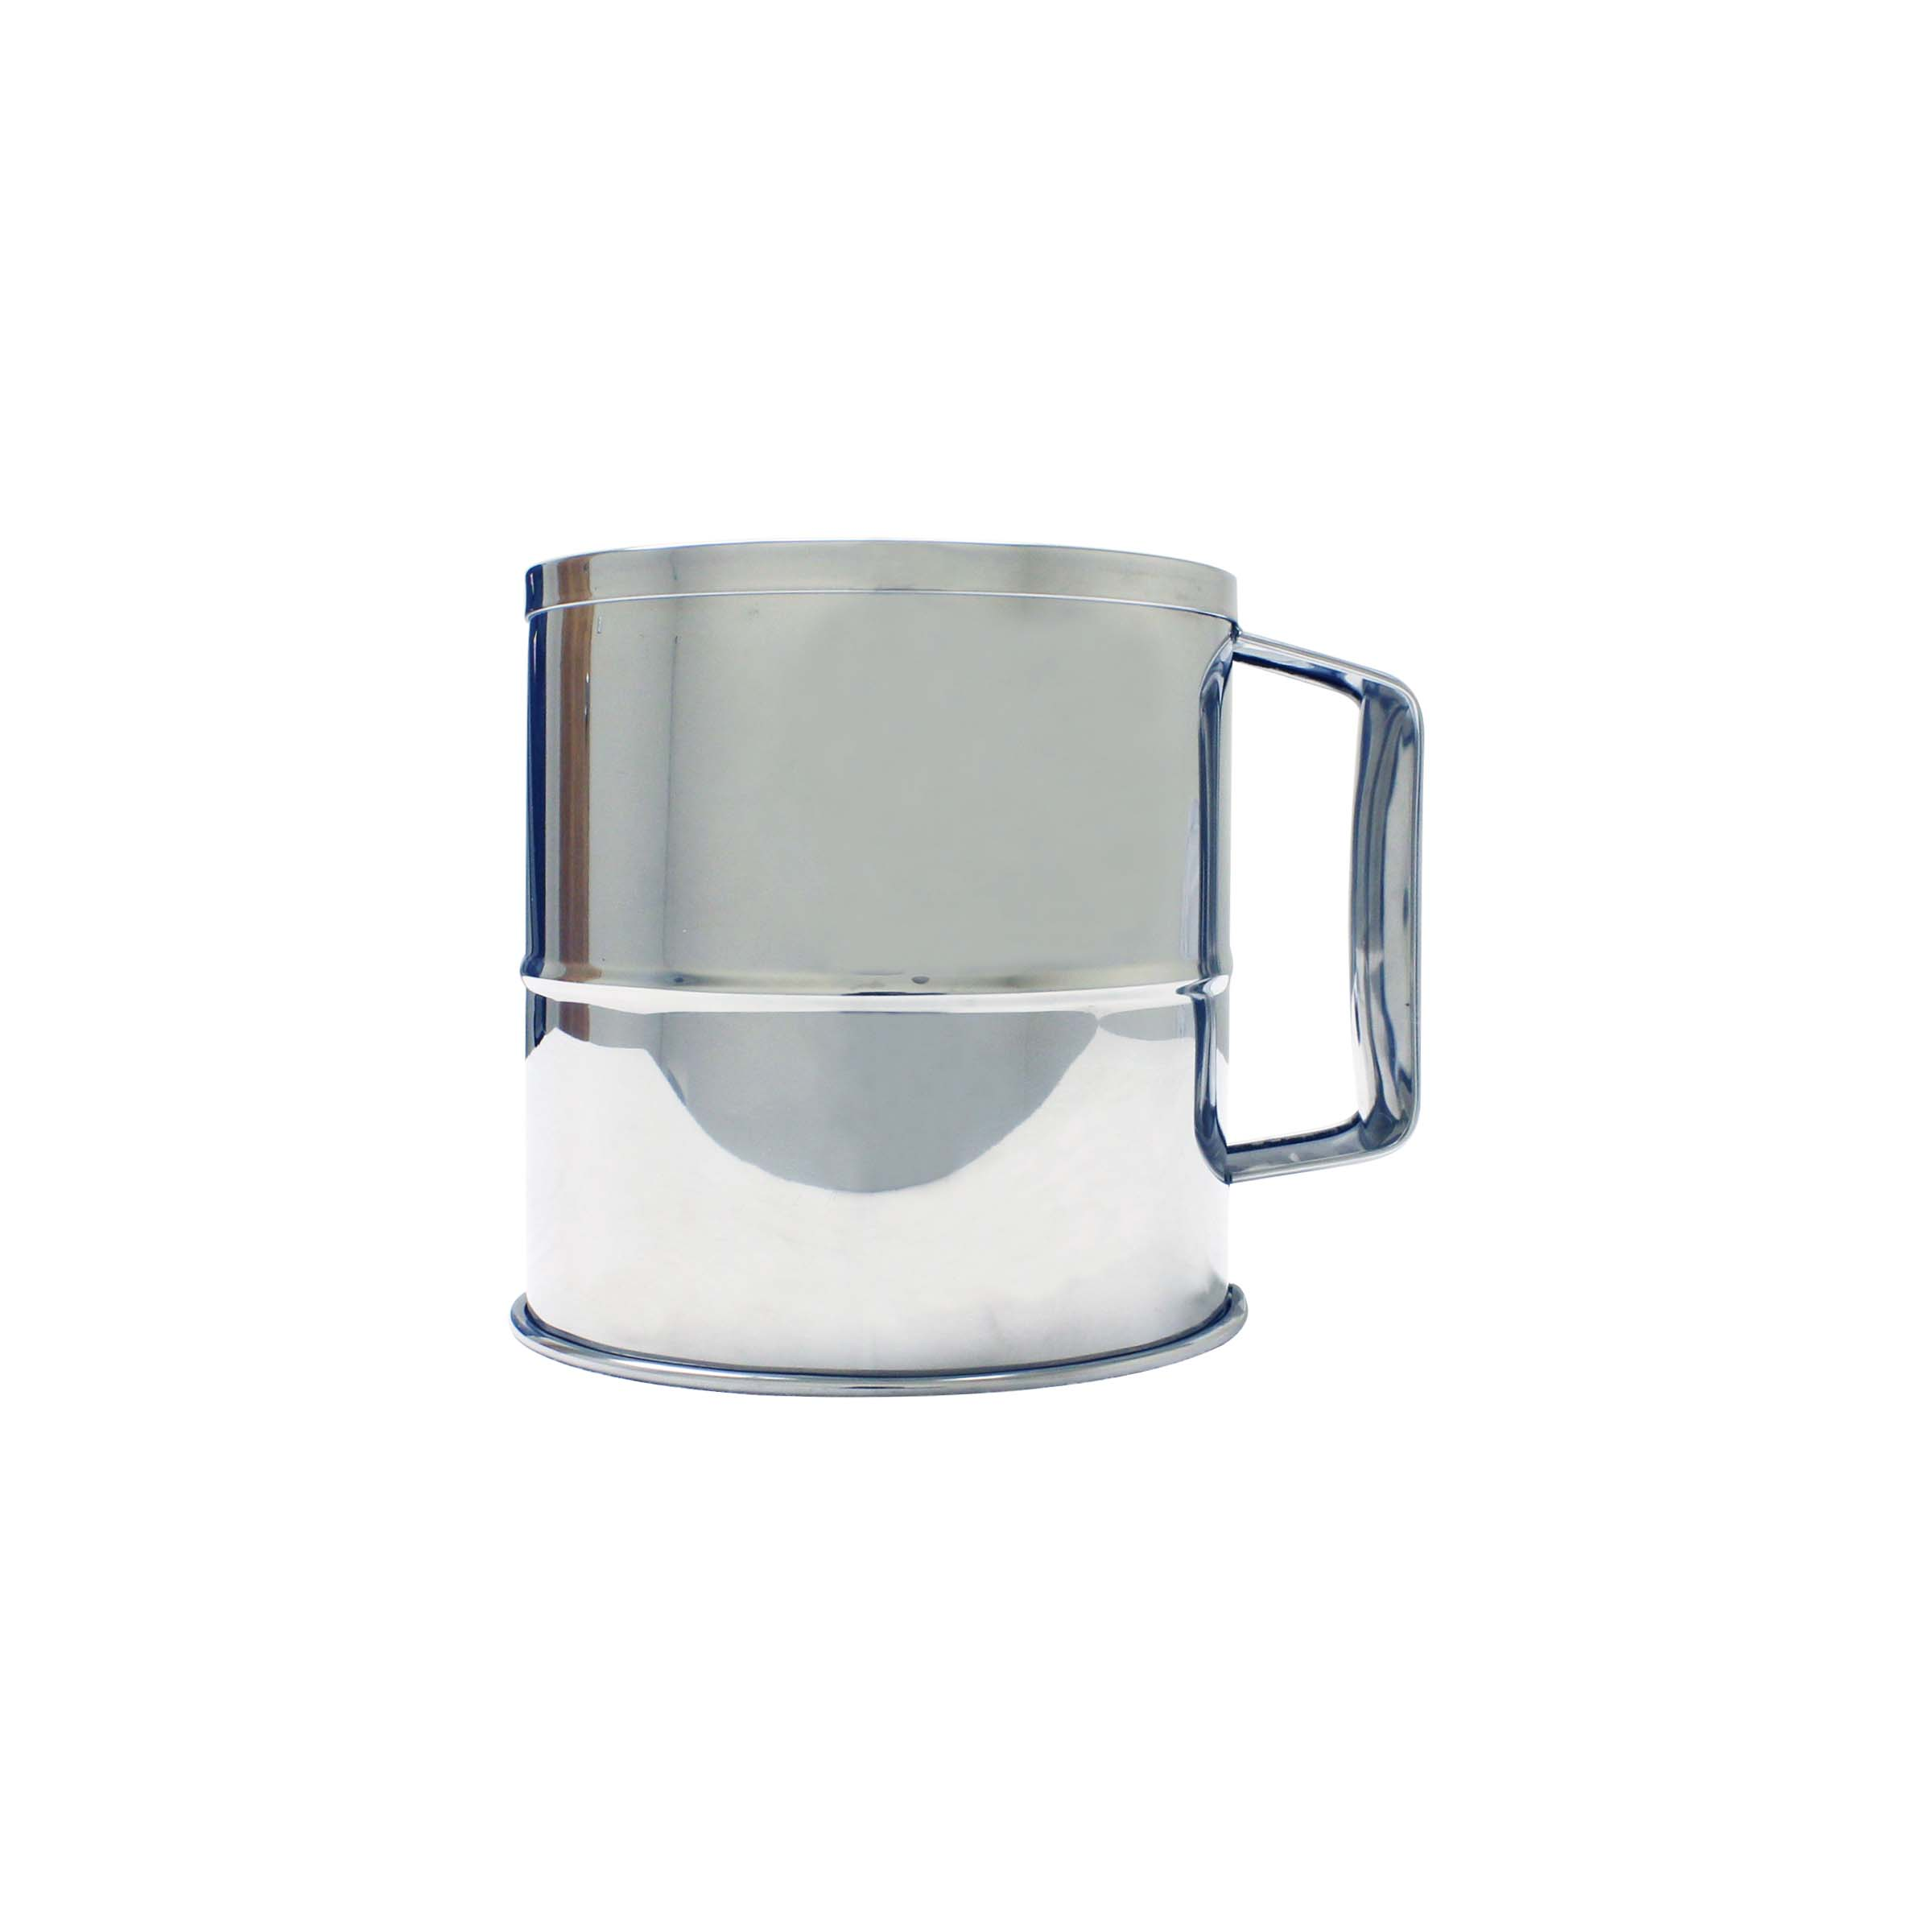 8 Cup Flour Sifter, Comes In Each by Thunder Group